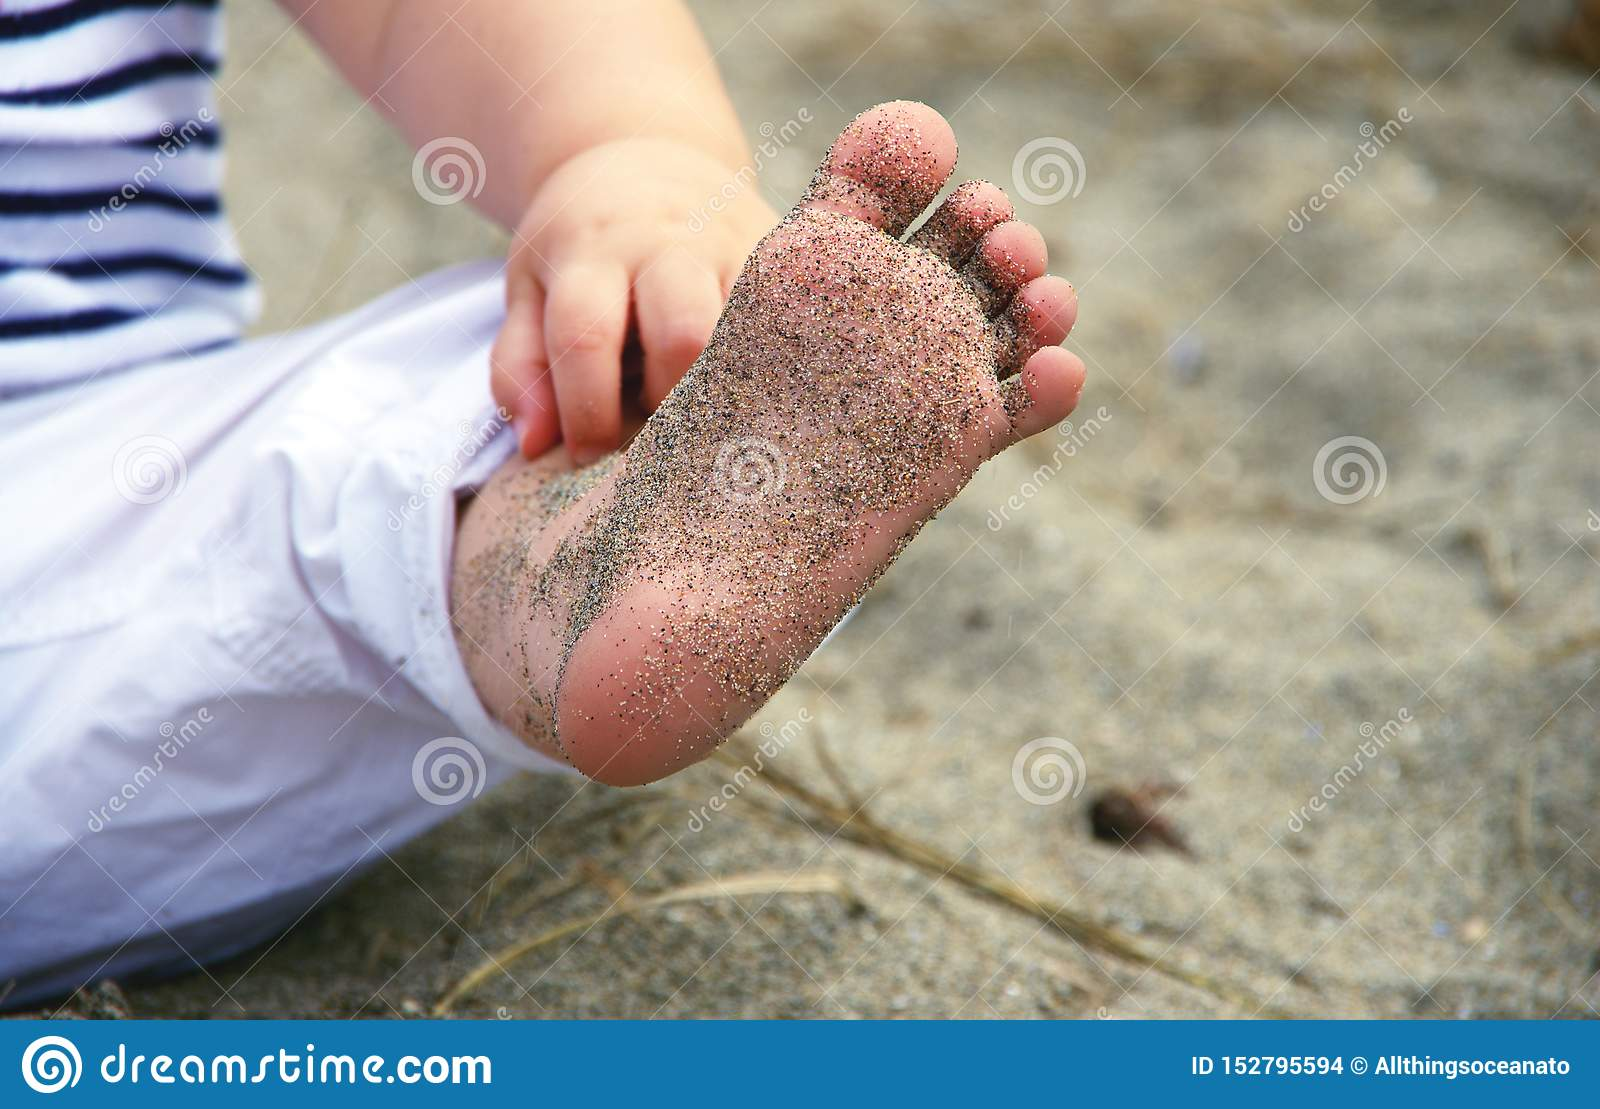 Baby girl wearing striped shirt and white pants, showing her sand-covered foot at a beach in Vancouver, BC Canada.